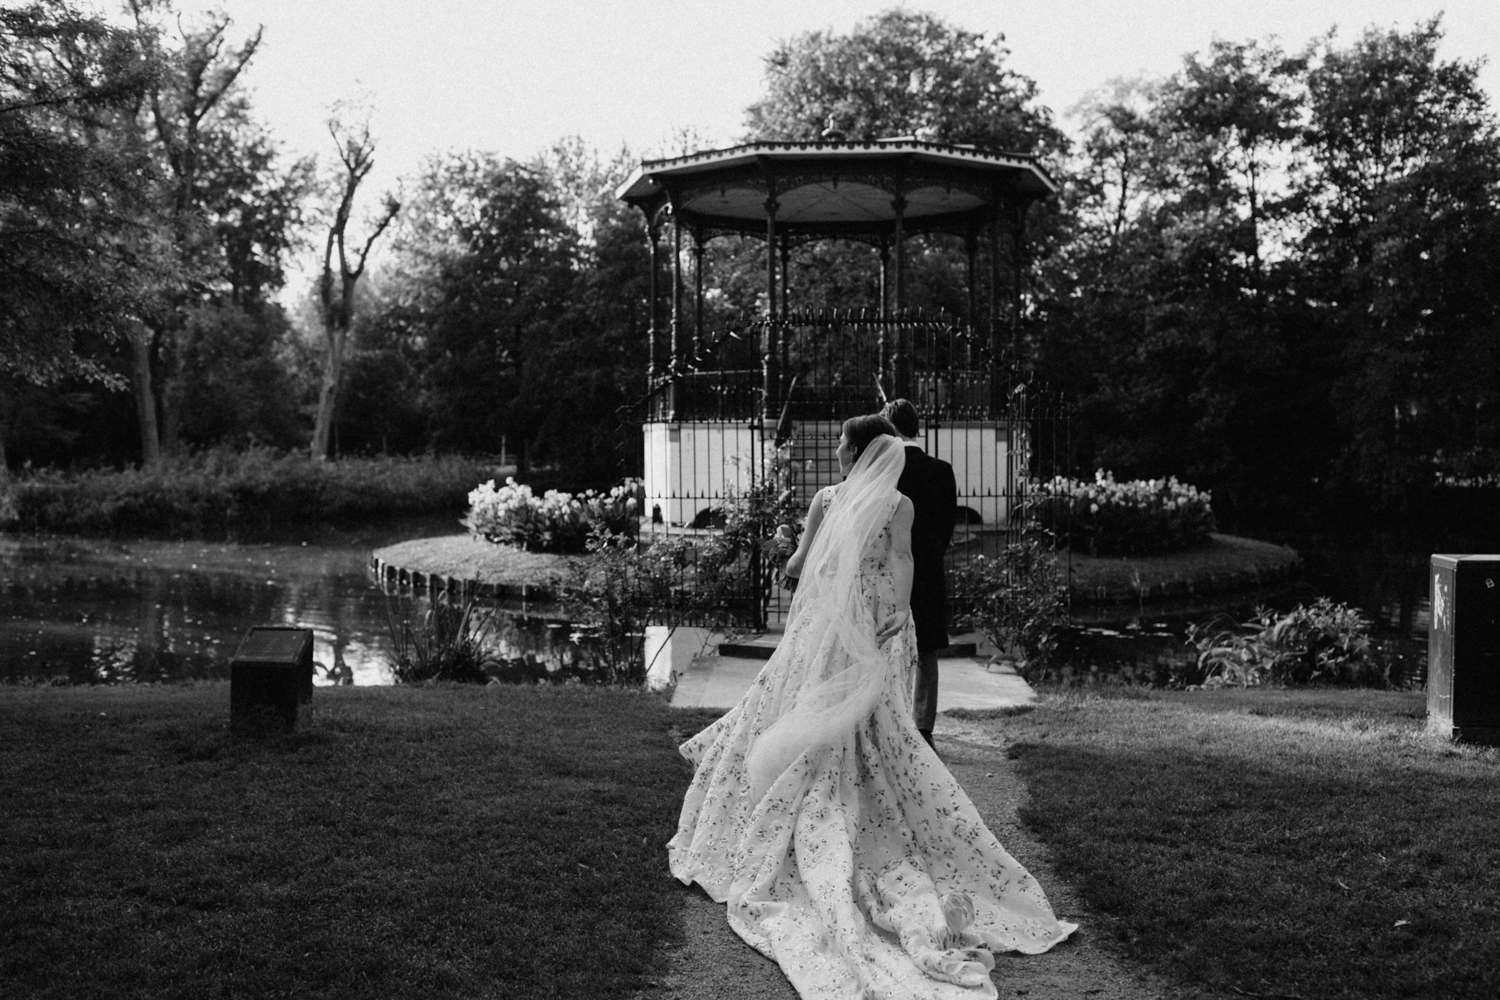 Bride and groom walking in Vondelpark Amsterdam